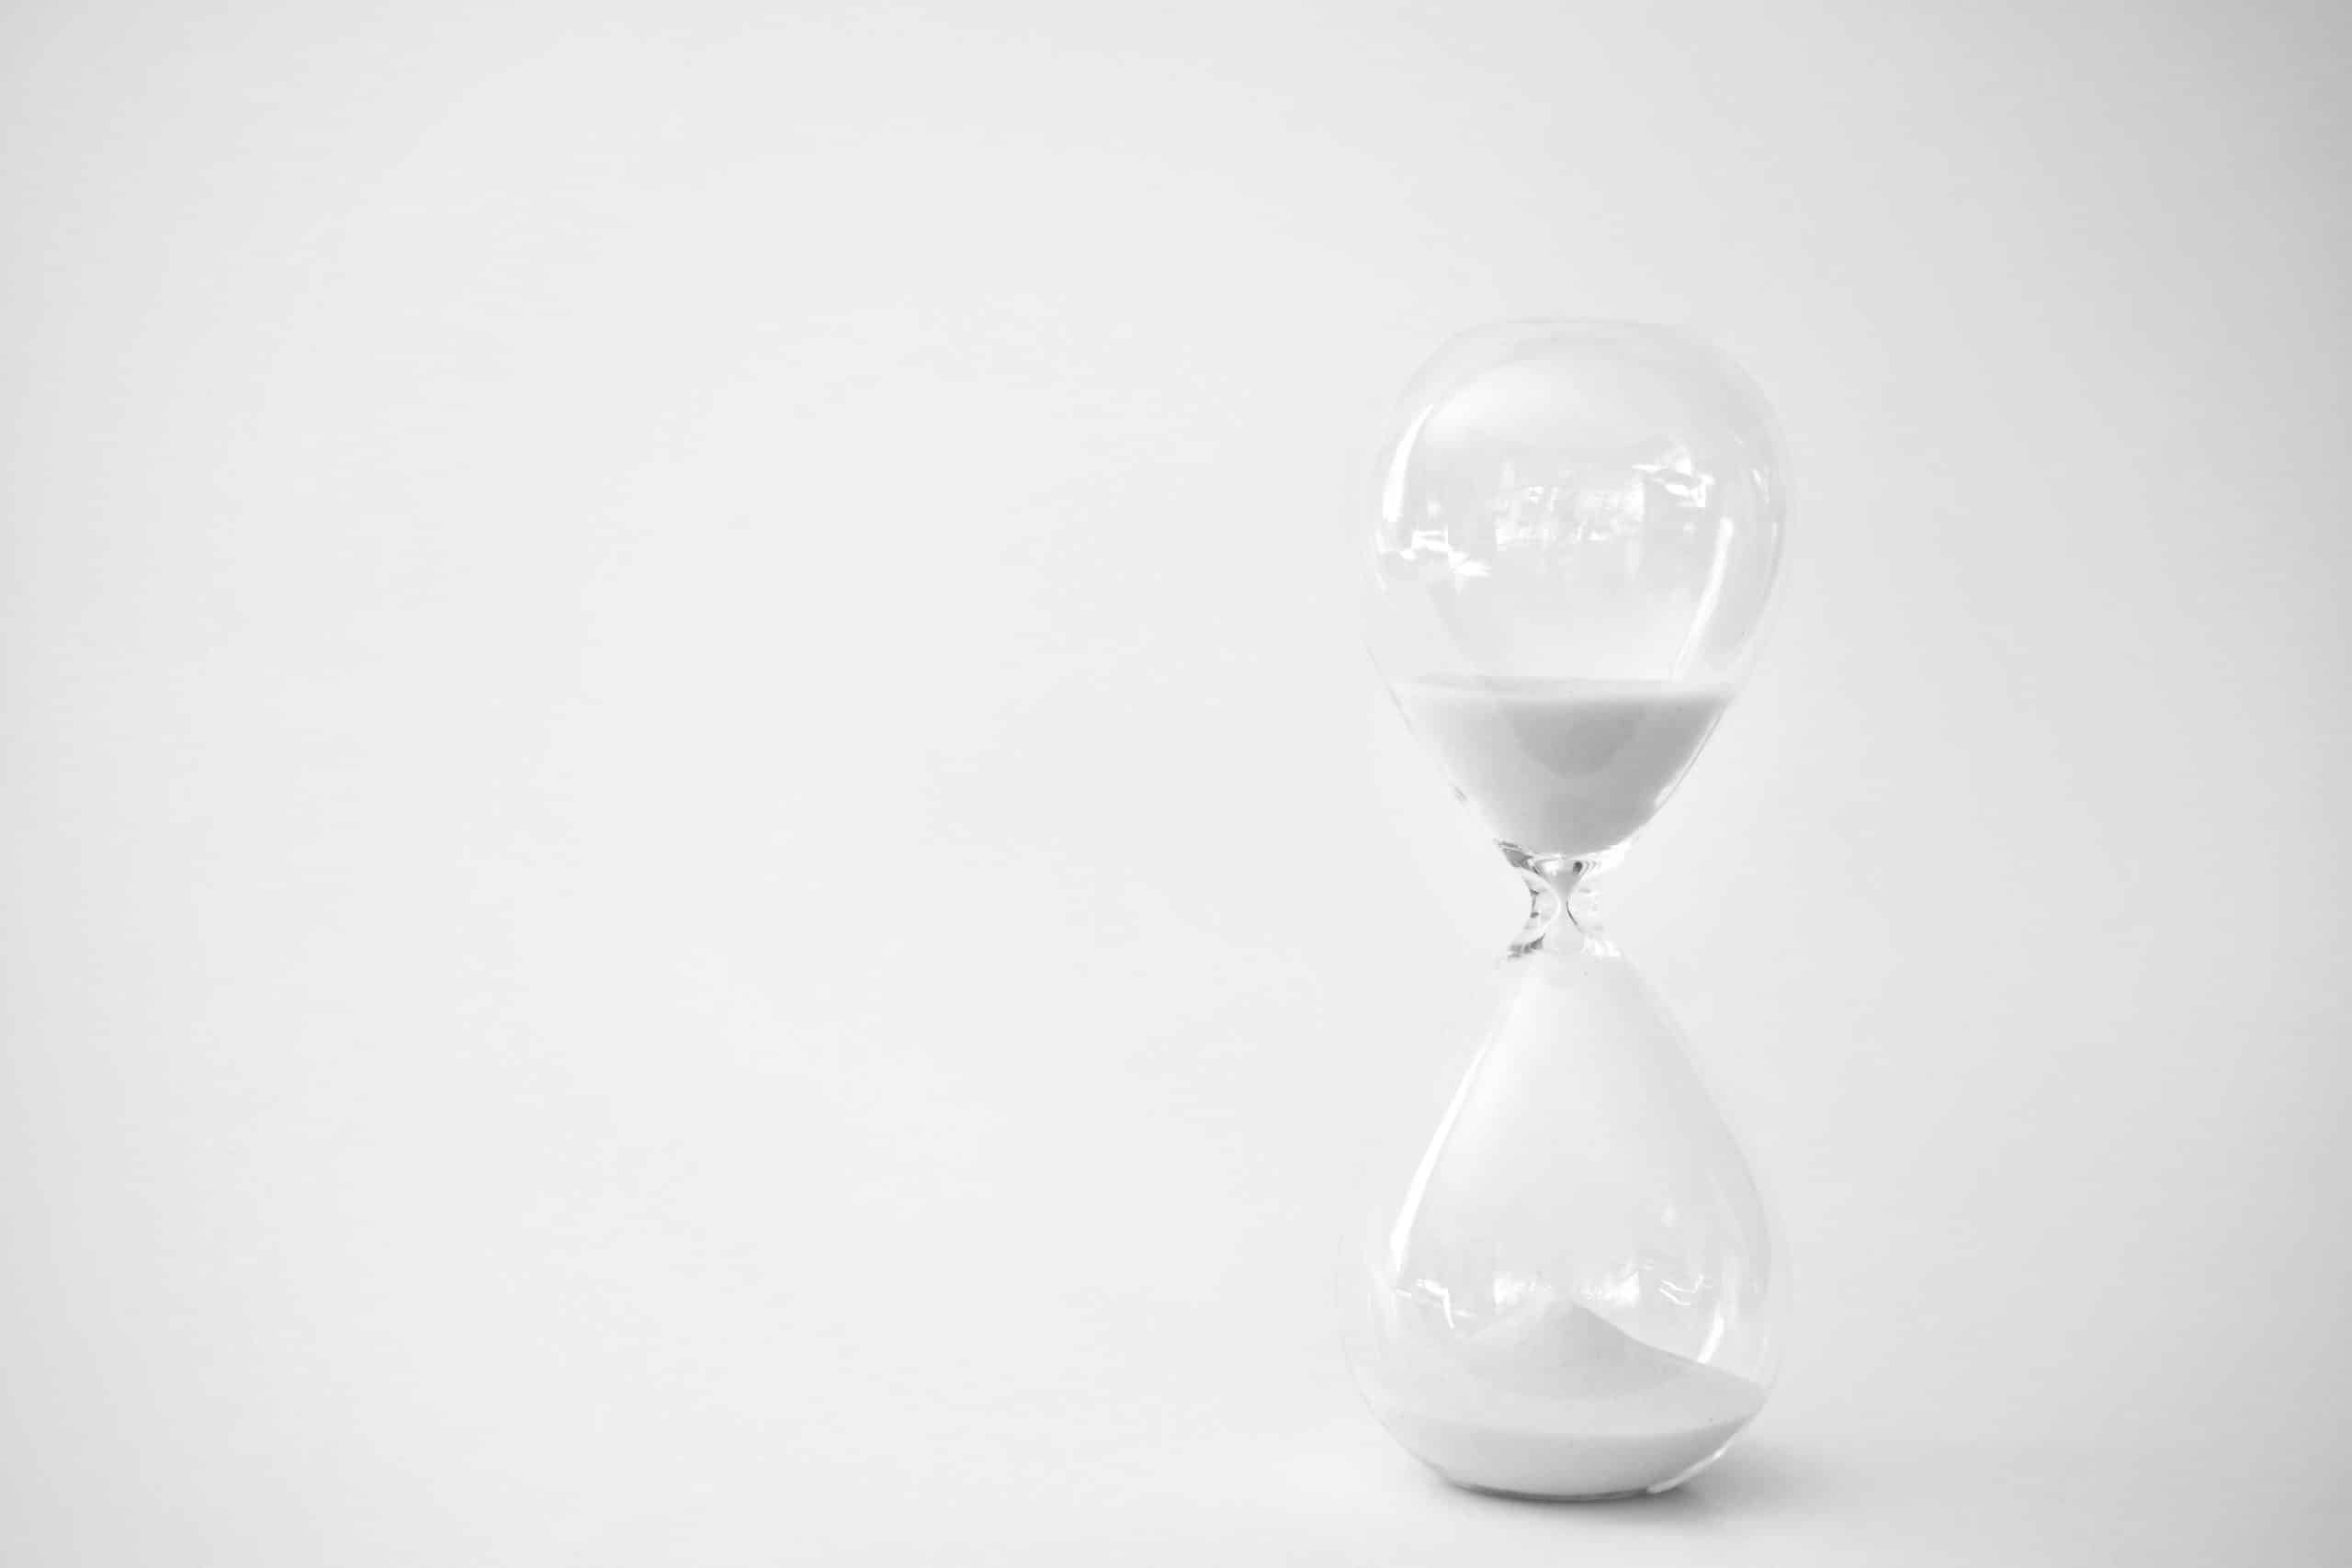 sand-running-through-the-bulbs-of-an-hourglass-measuring-the-passing-time-in-a-countdown-to-the-end_t20_YwBa2j